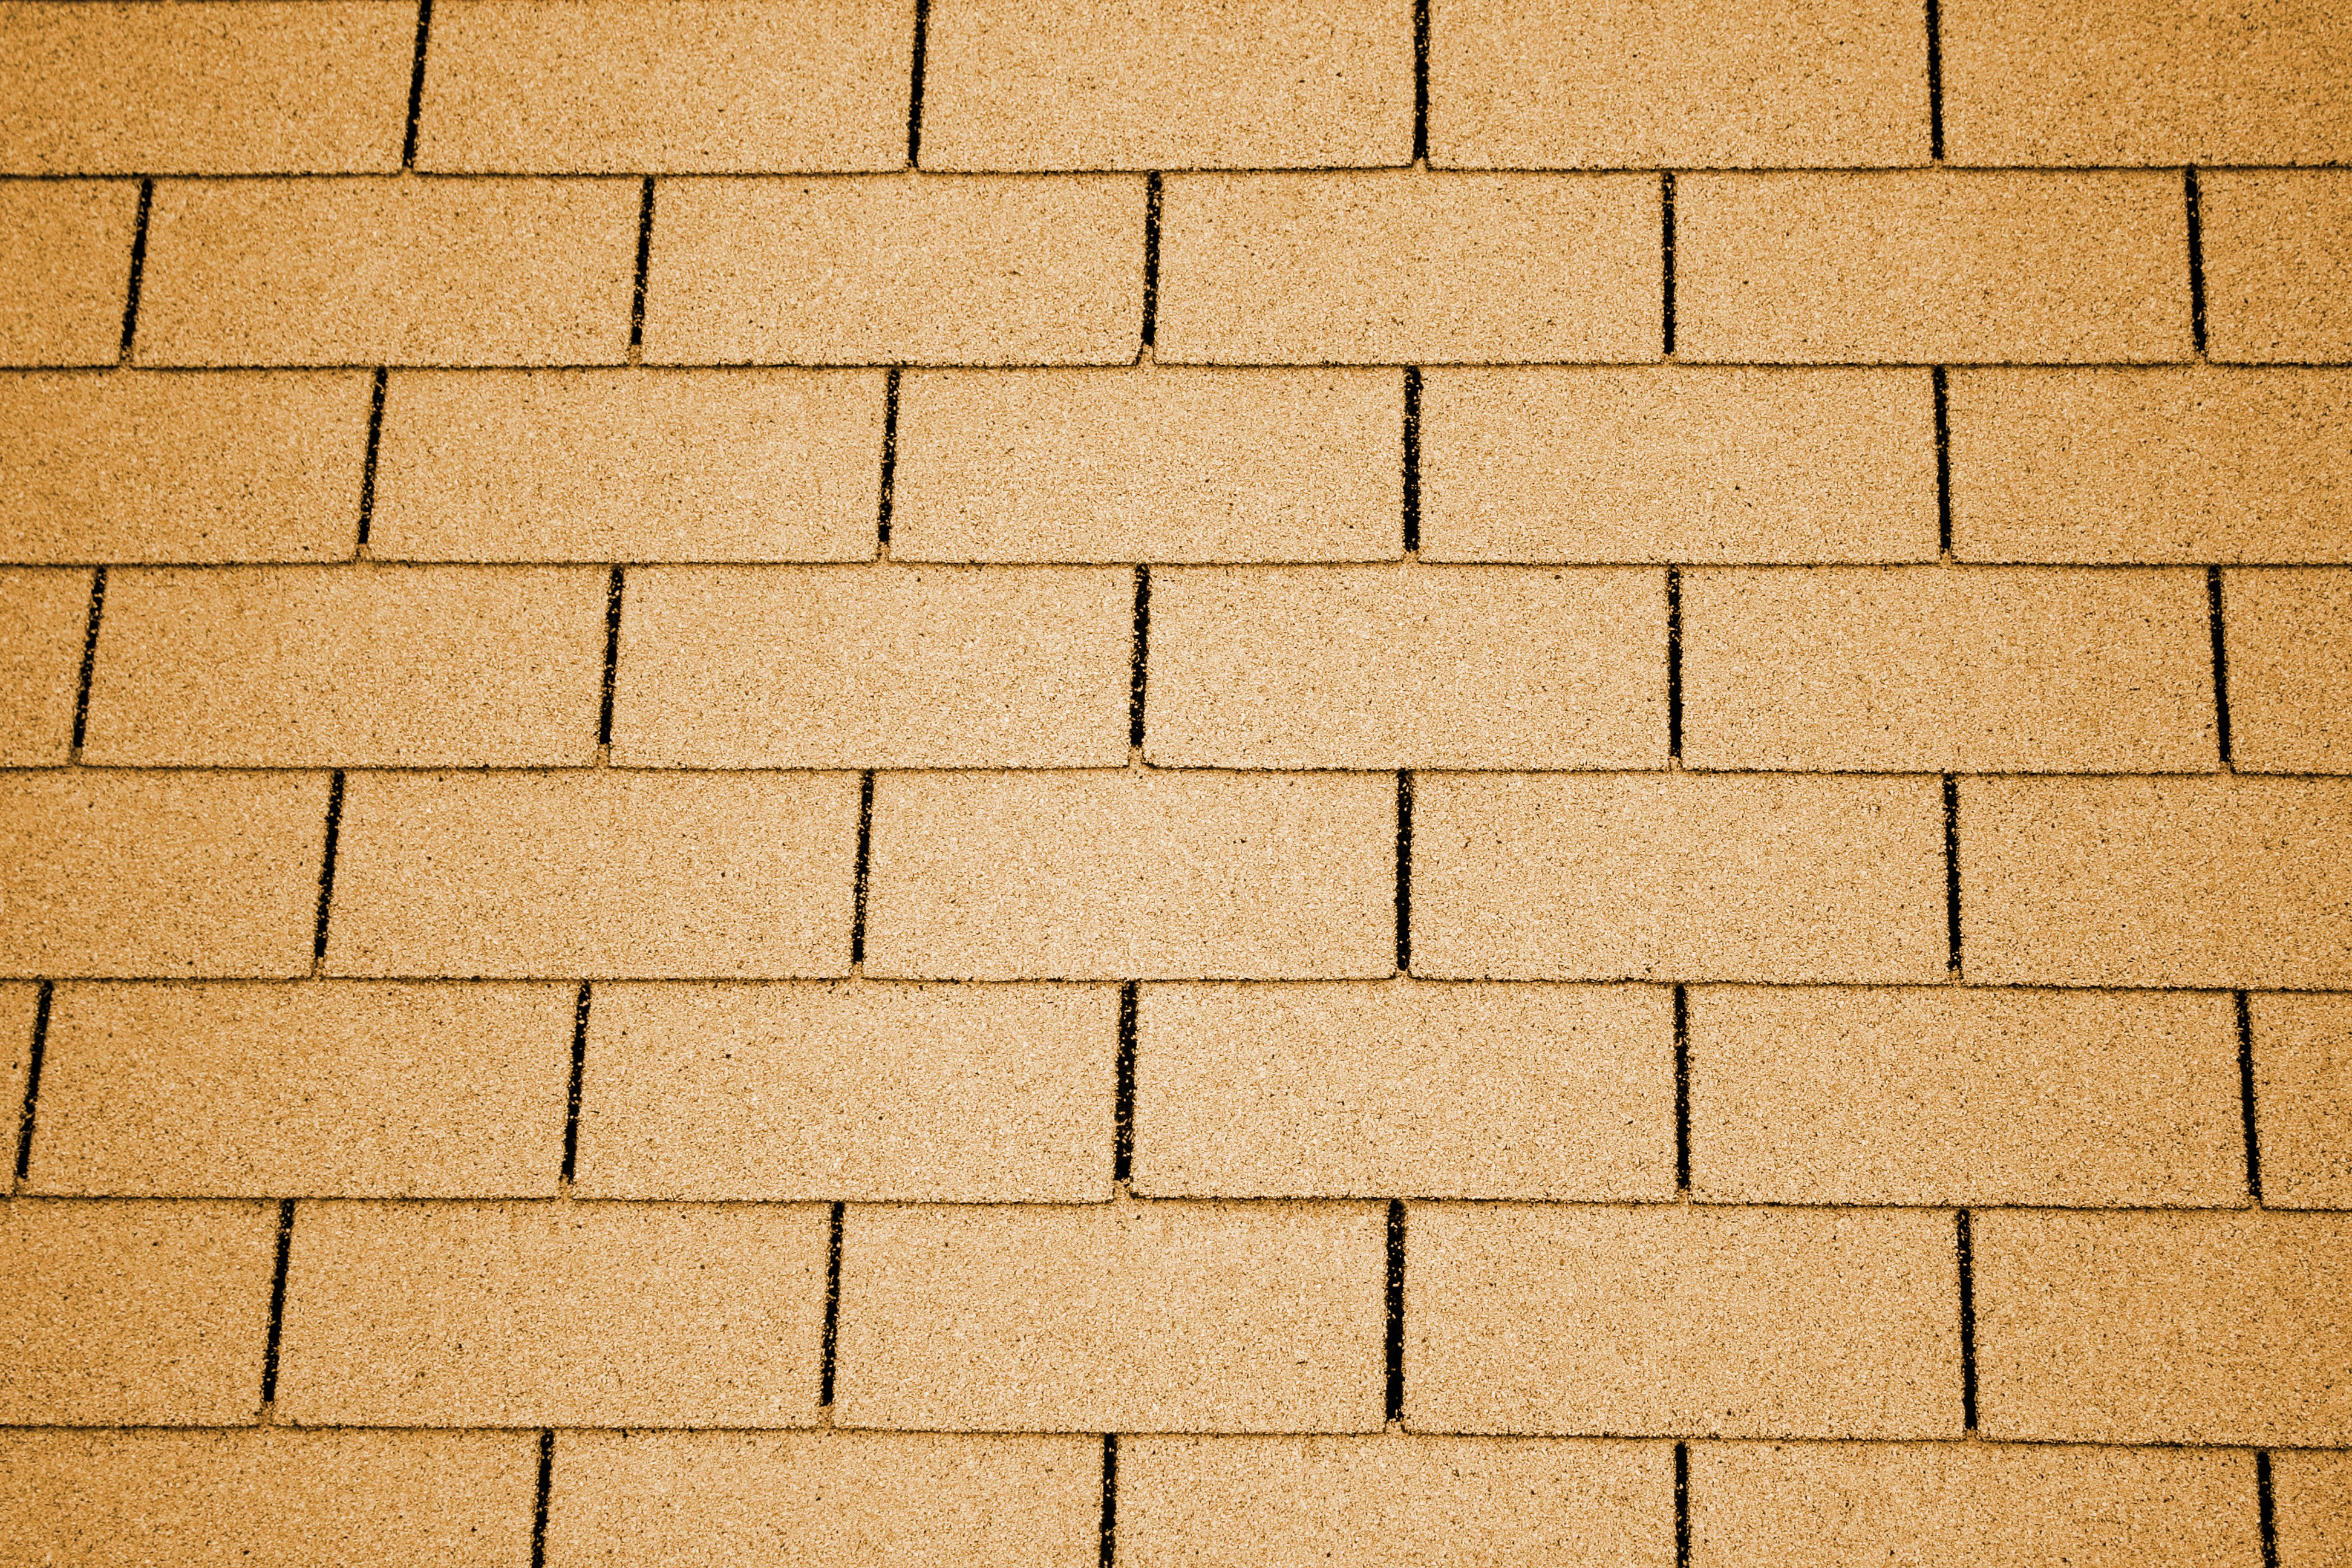 Free Roofing Shingles Cliparts, Download Free Clip Art, Free.